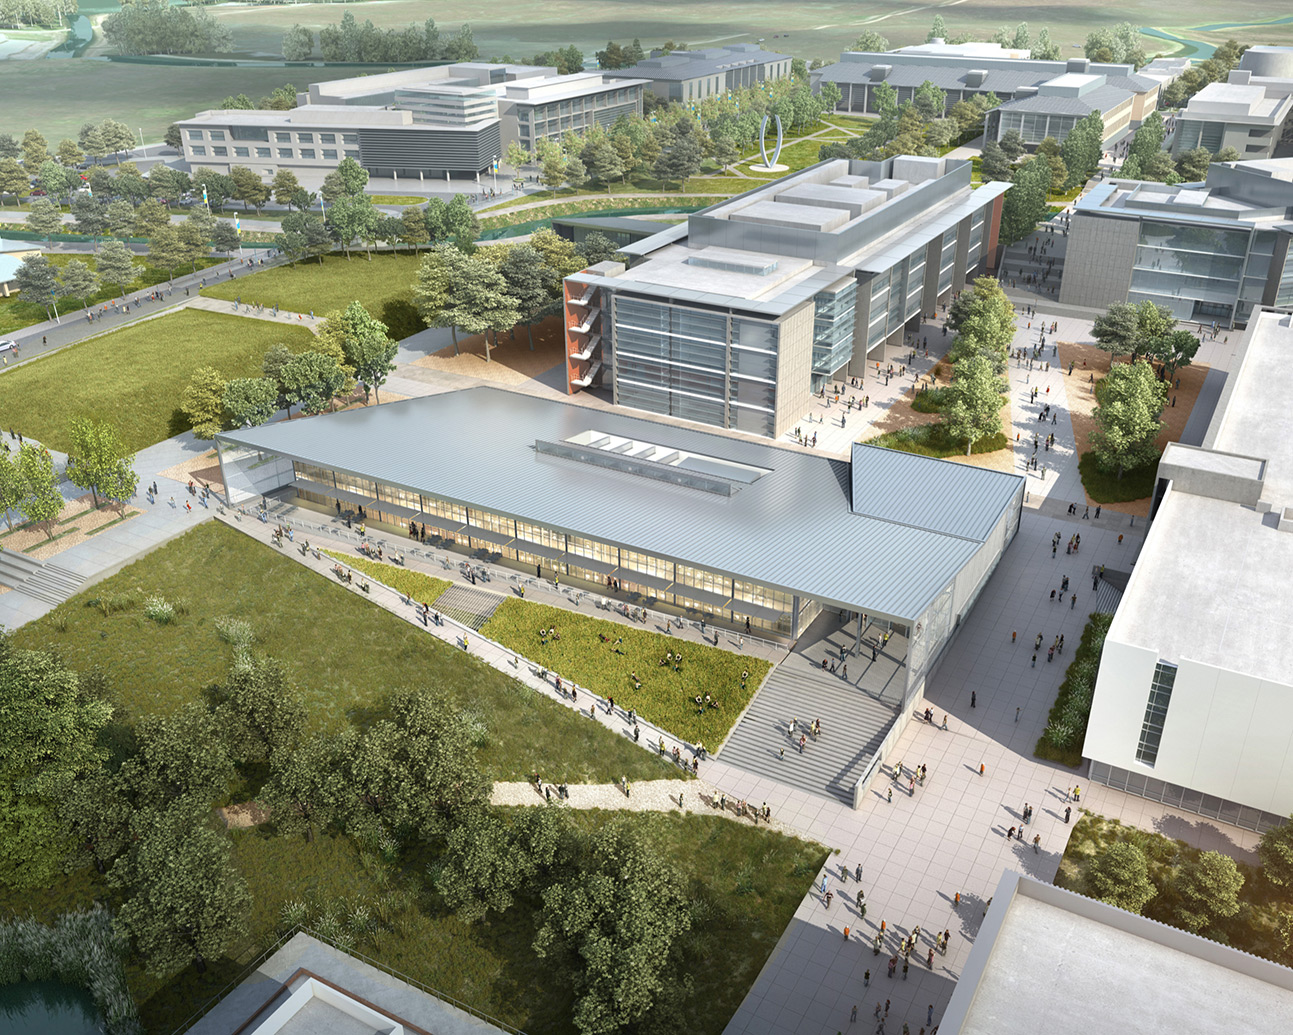 An artist's rendering shows what the campus will look like when the project is complete.